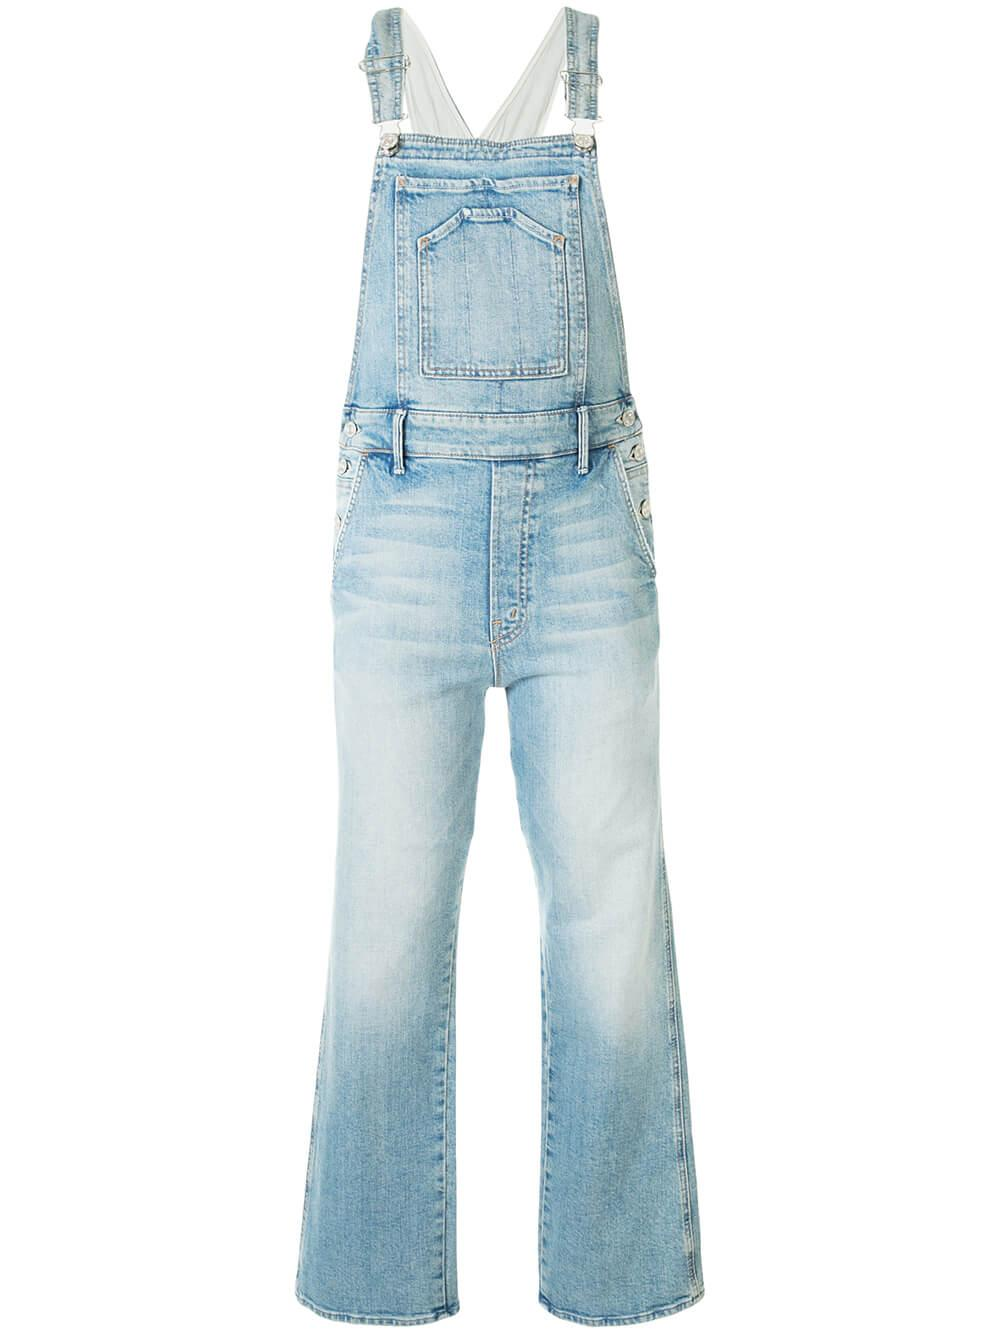 Tripper Overall Denim Ankle Jumpsuit Item # 9434C-259